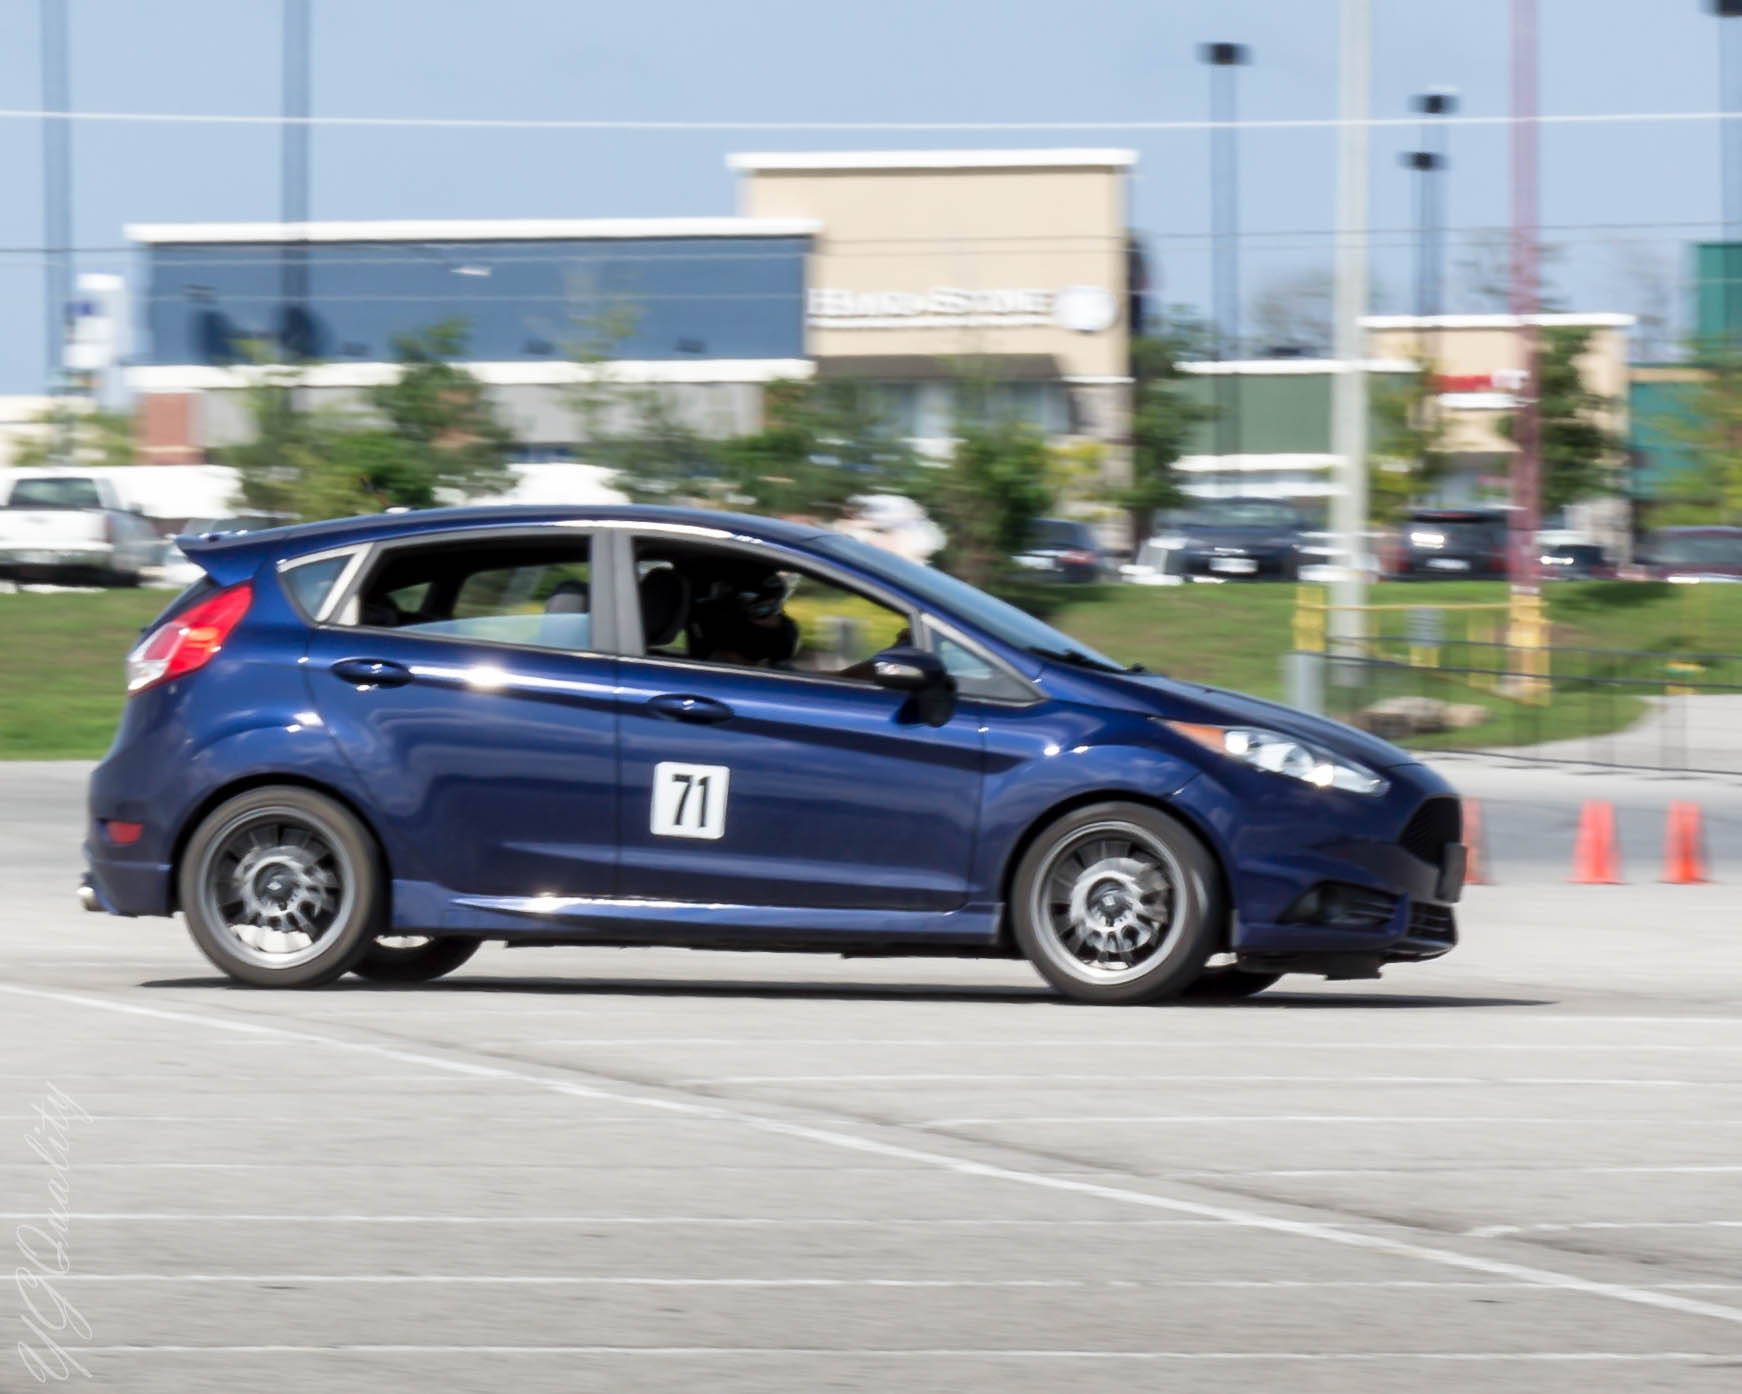 Ford Fiesta ST Autocross - BC Racing Coilovers Handling Test